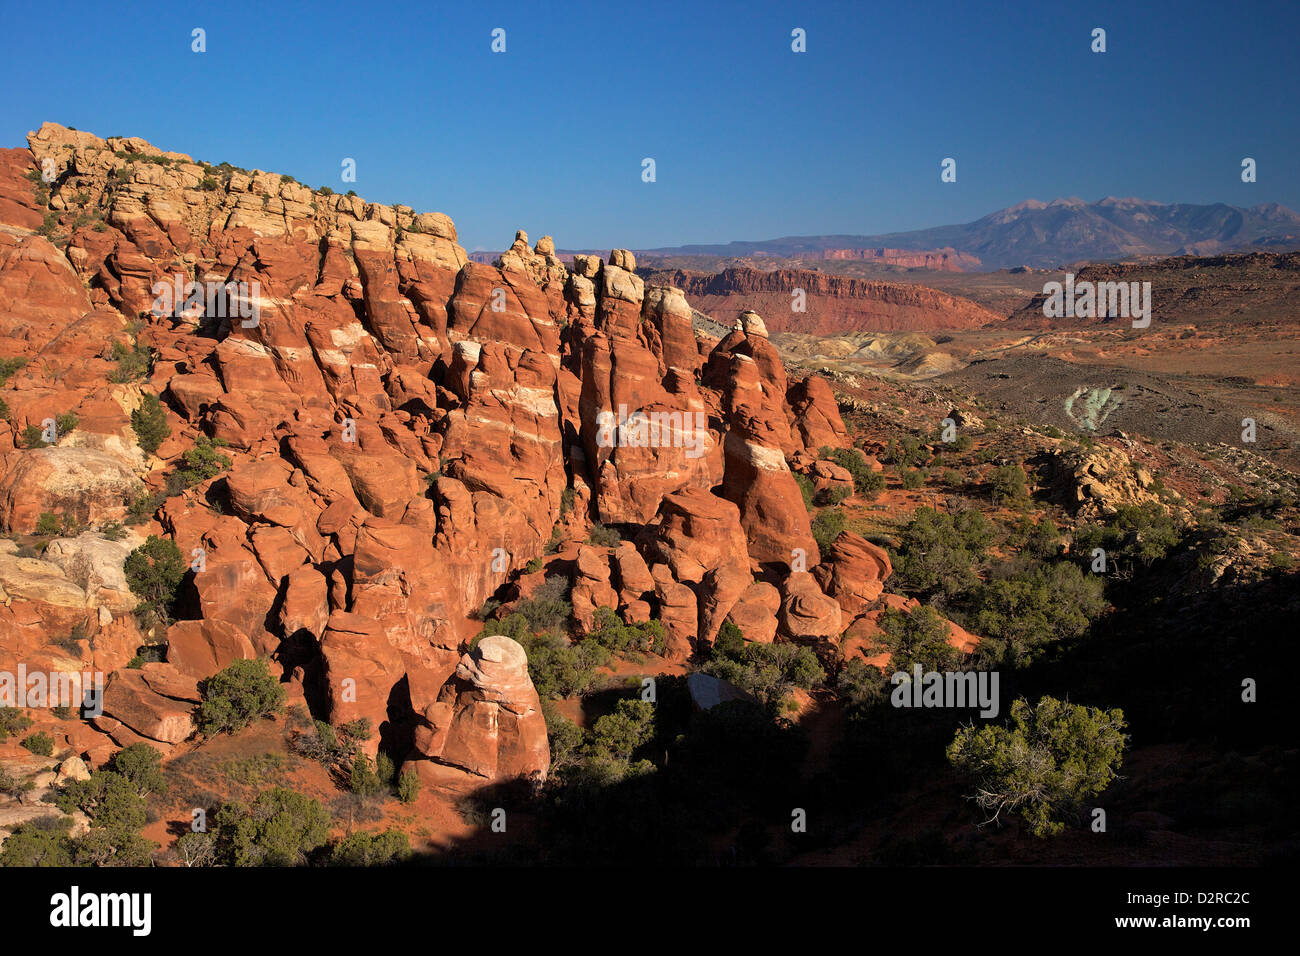 Fiery Furnace, Arches National Park, Moab, Utah, United States of America, North America - Stock Image